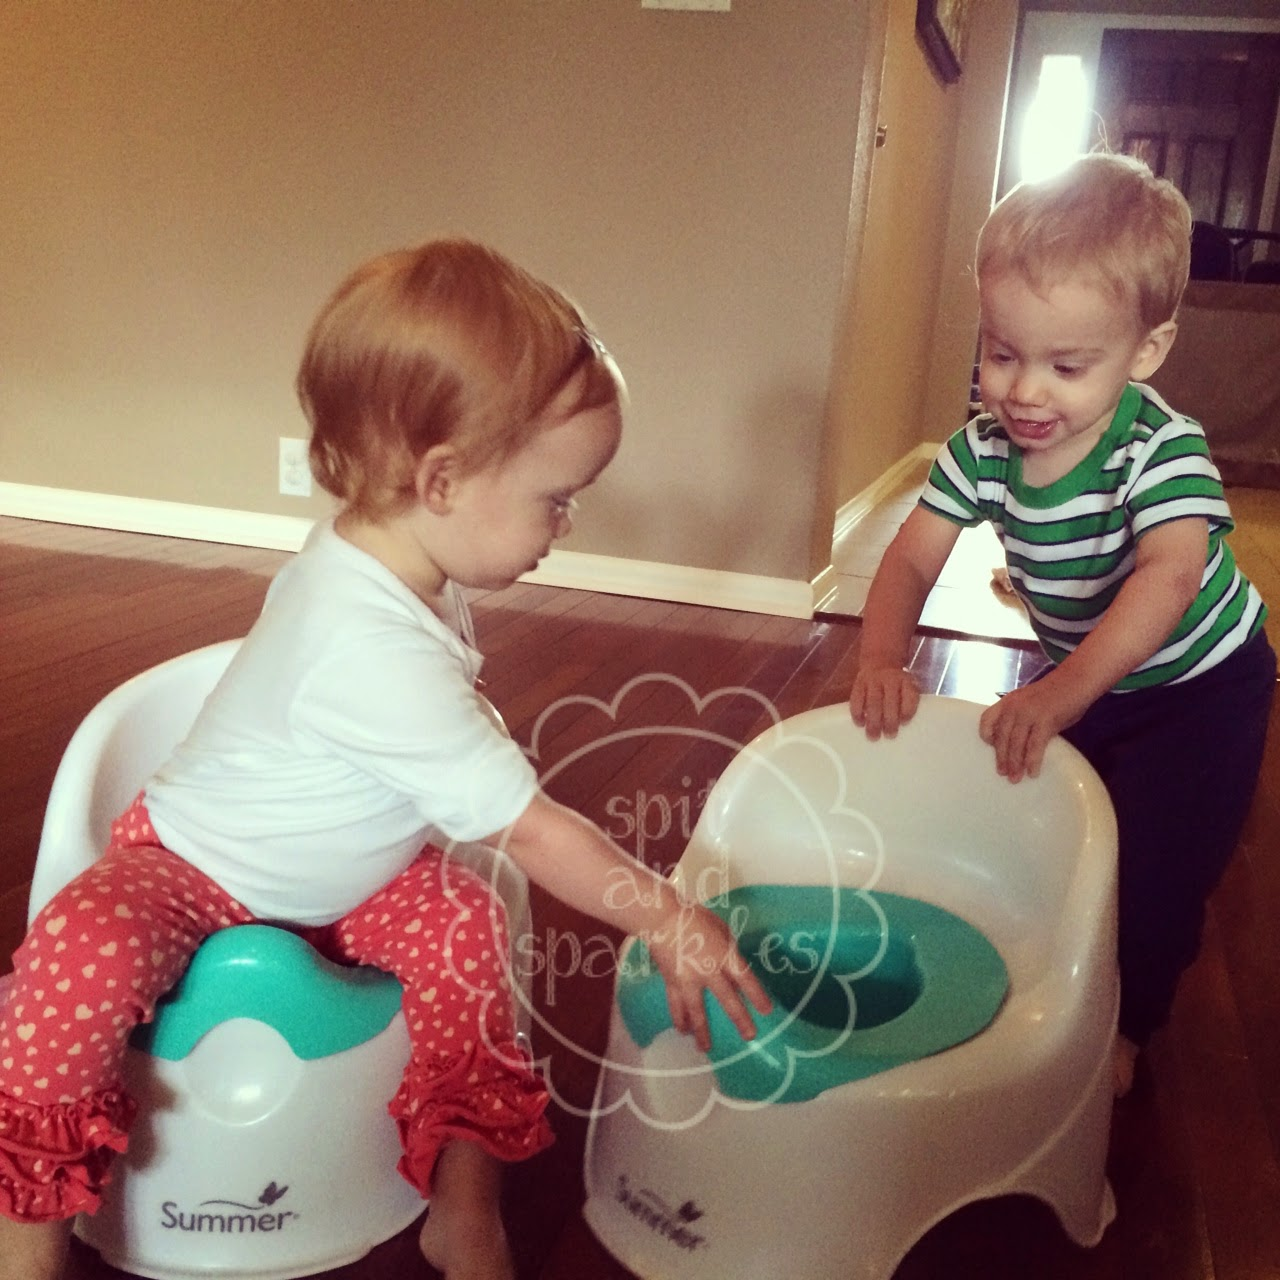 A twin mom's approach to early potty teaching by Spit and Sparkles Blog. #pottytraining #twins #earlypottytraining